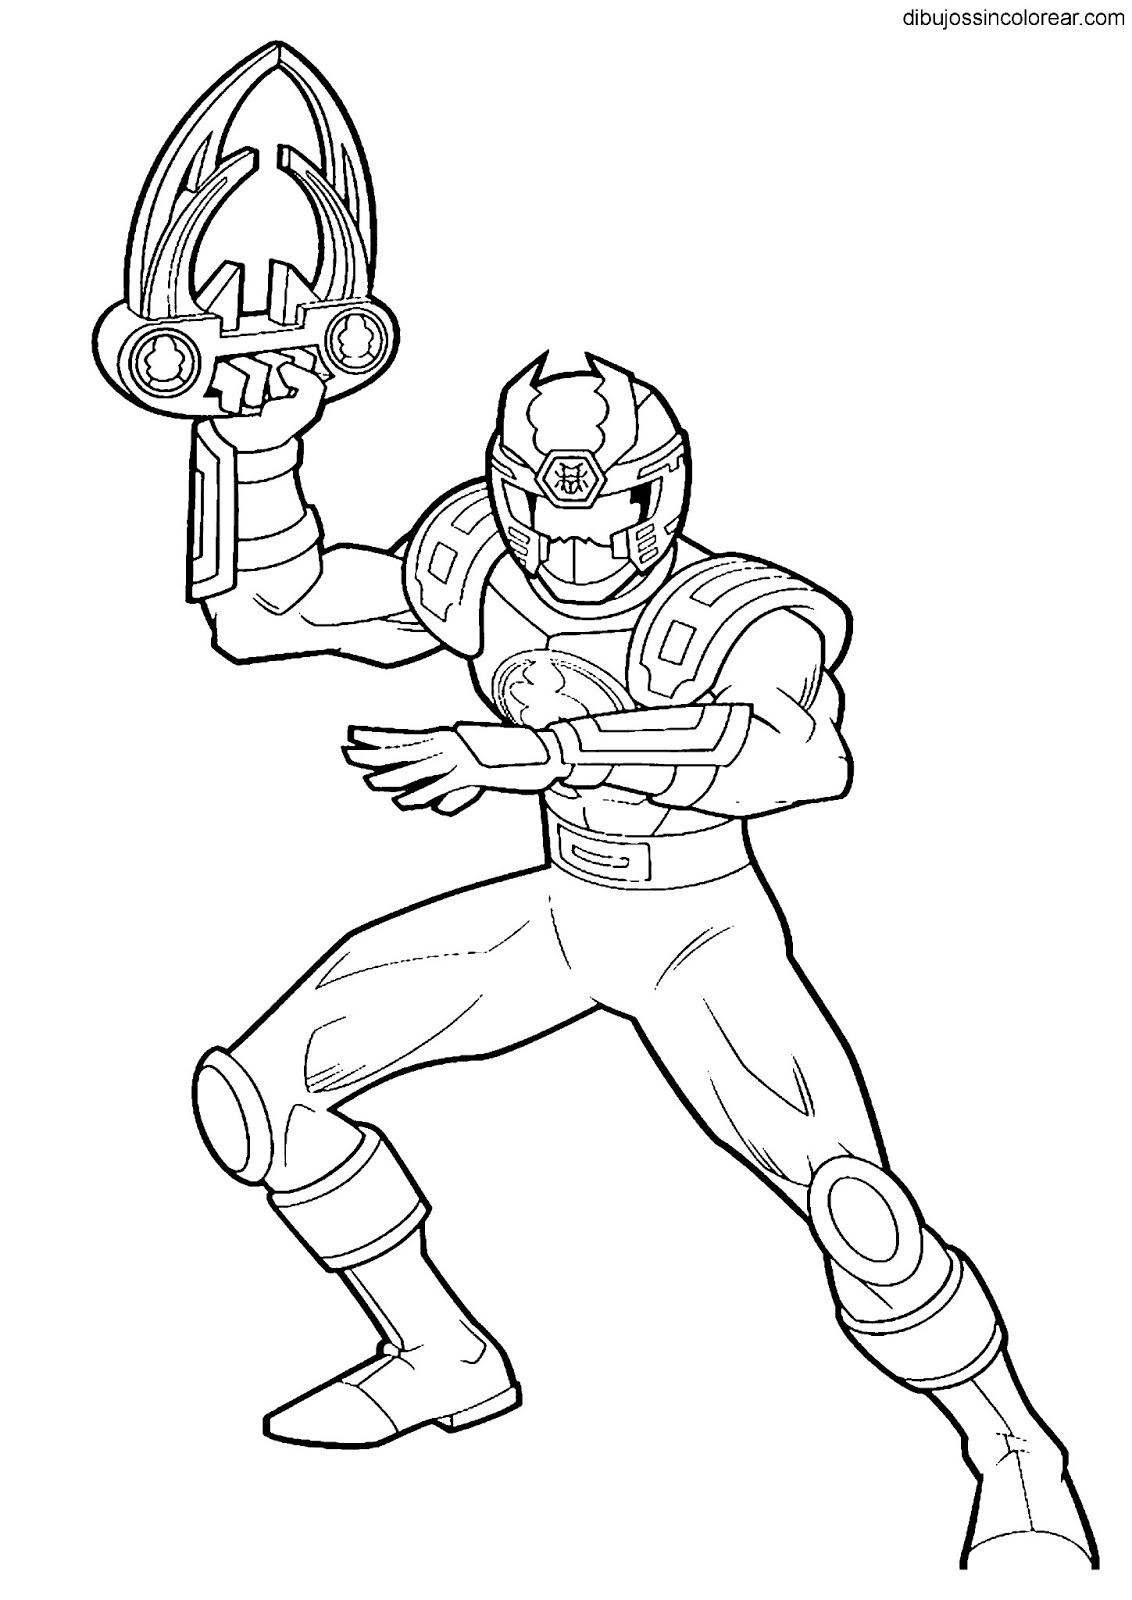 coloring pictures of power rangers power rangers colouring pages 57 character printable online pictures coloring of power rangers